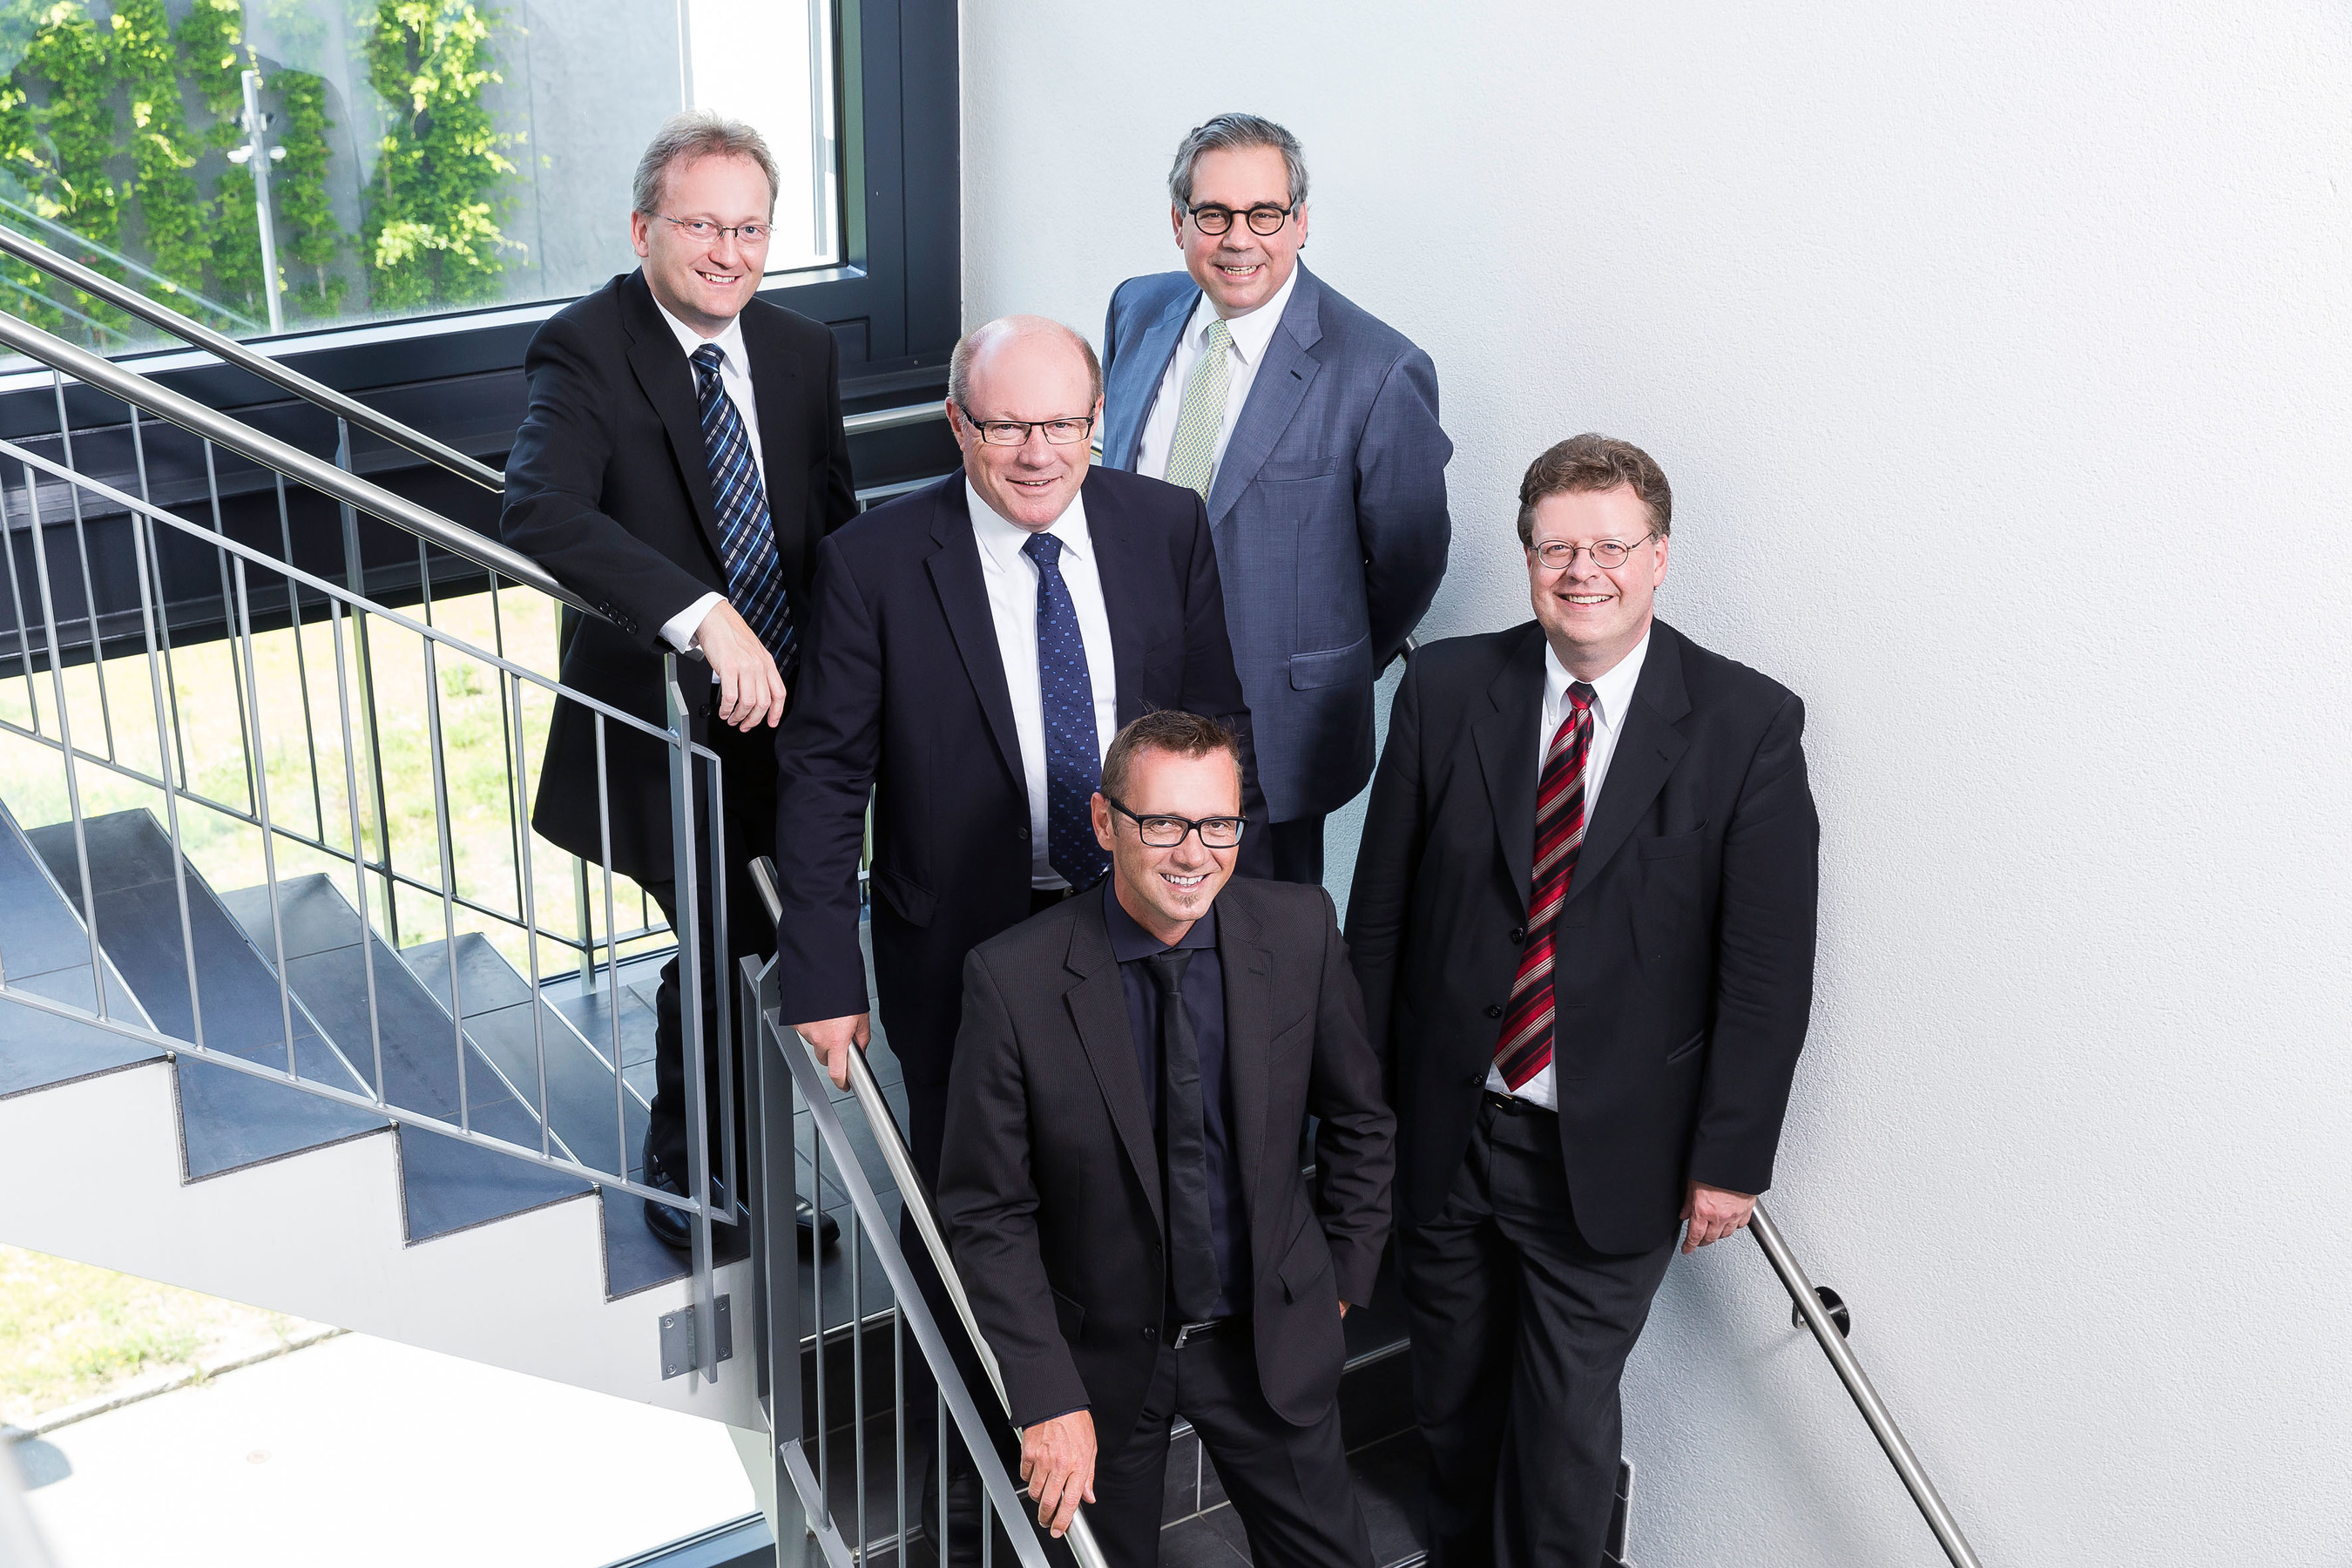 Board of directors at United Security Providers (PRNewsFoto/United Security Providers)